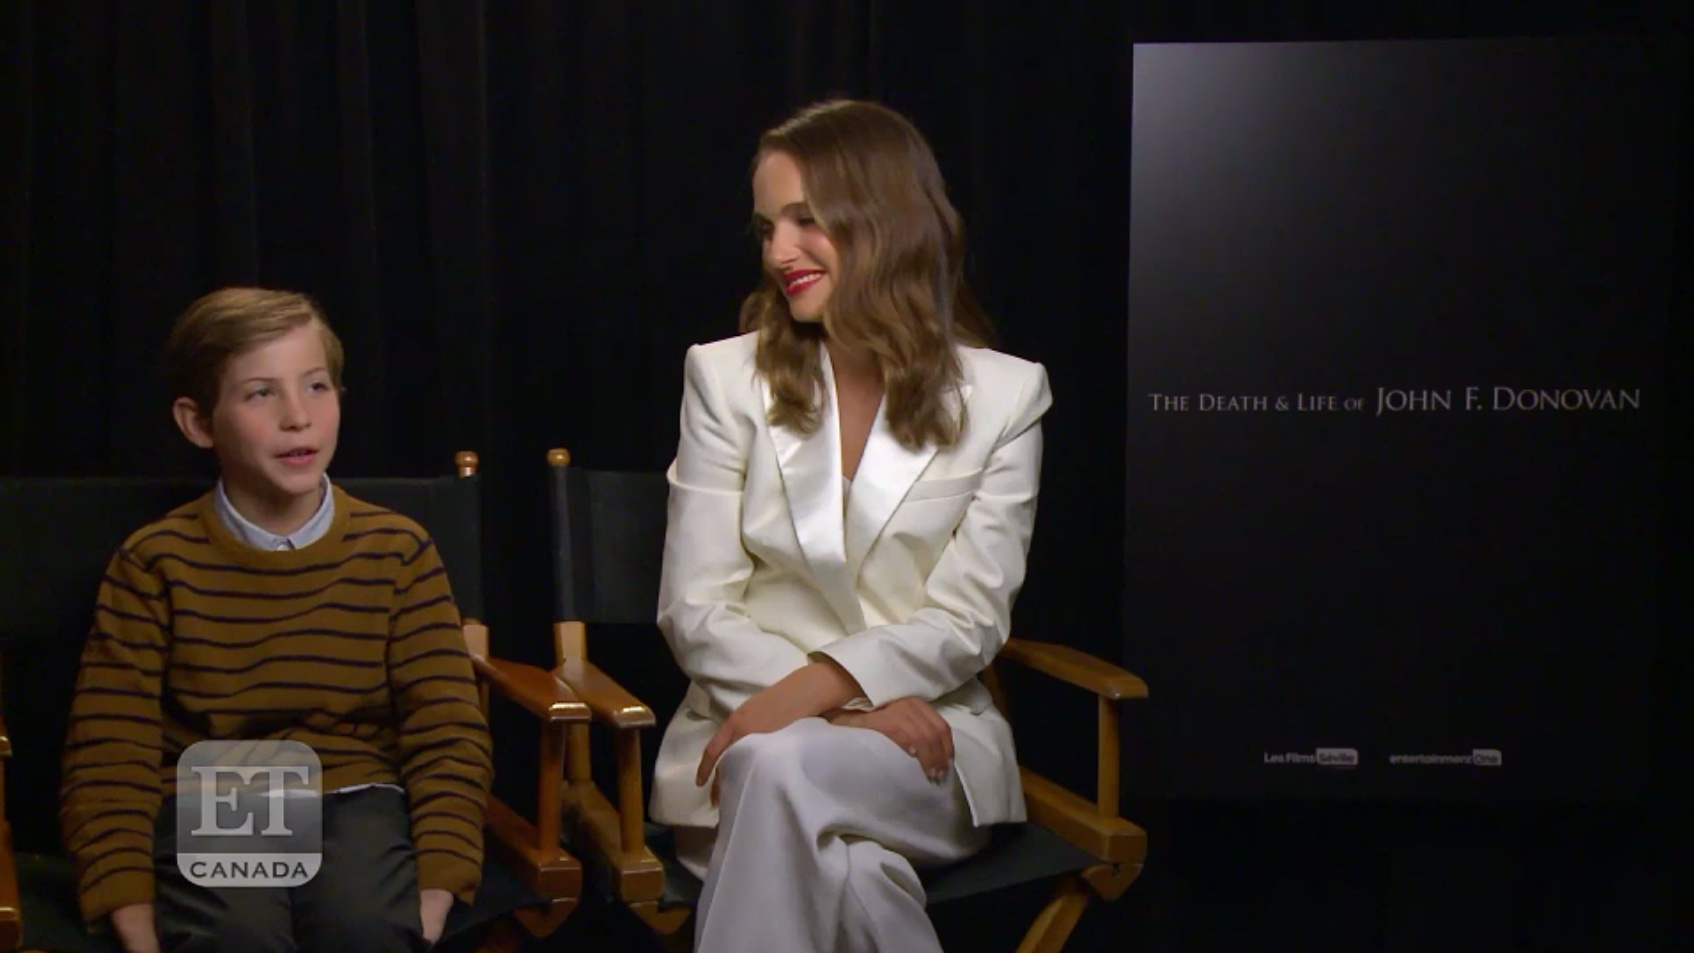 Natalie and Jacob Tremblay for ET Canada